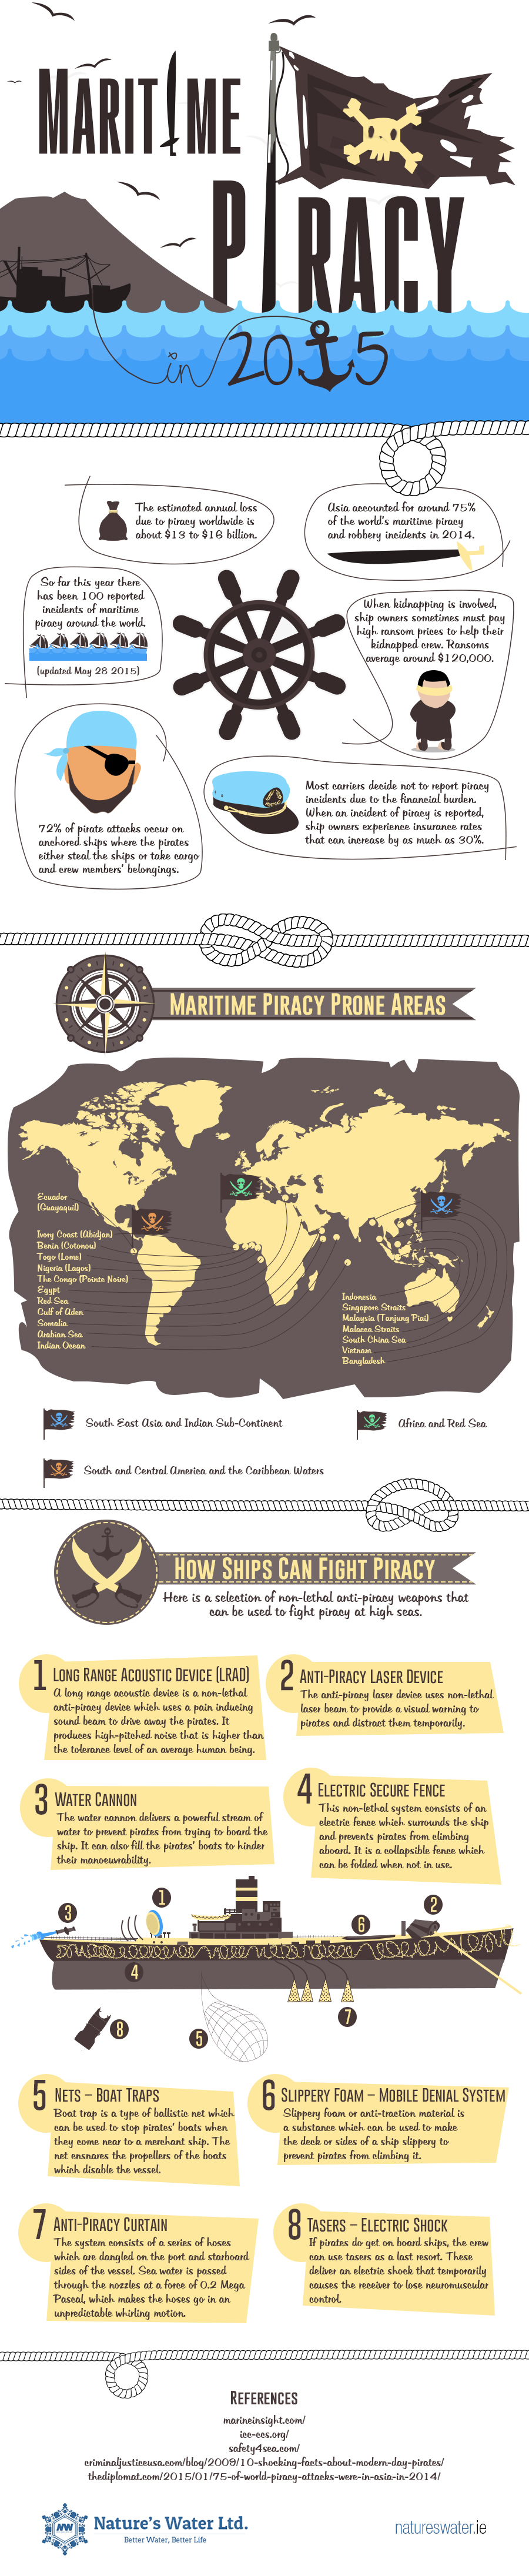 Infographic on Piracy